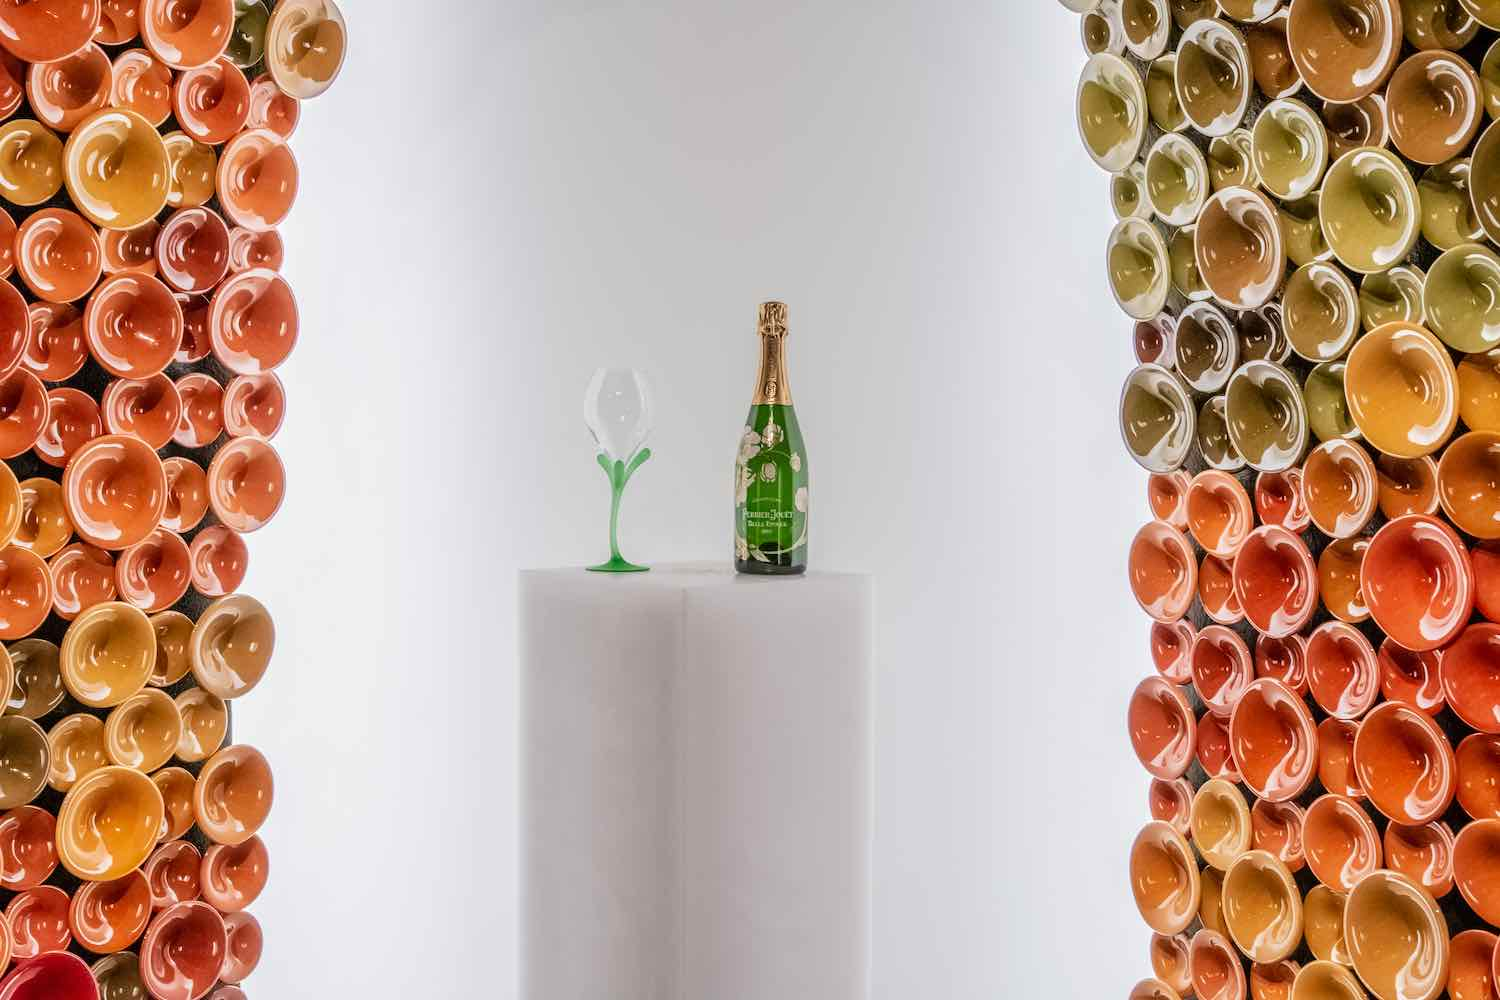 Perrier Jouët's METAMORPHOSIS installation by Andrea Mancuso @ DesignMiami/ 2019 - Courtesy of Maison Perrier Jouët.